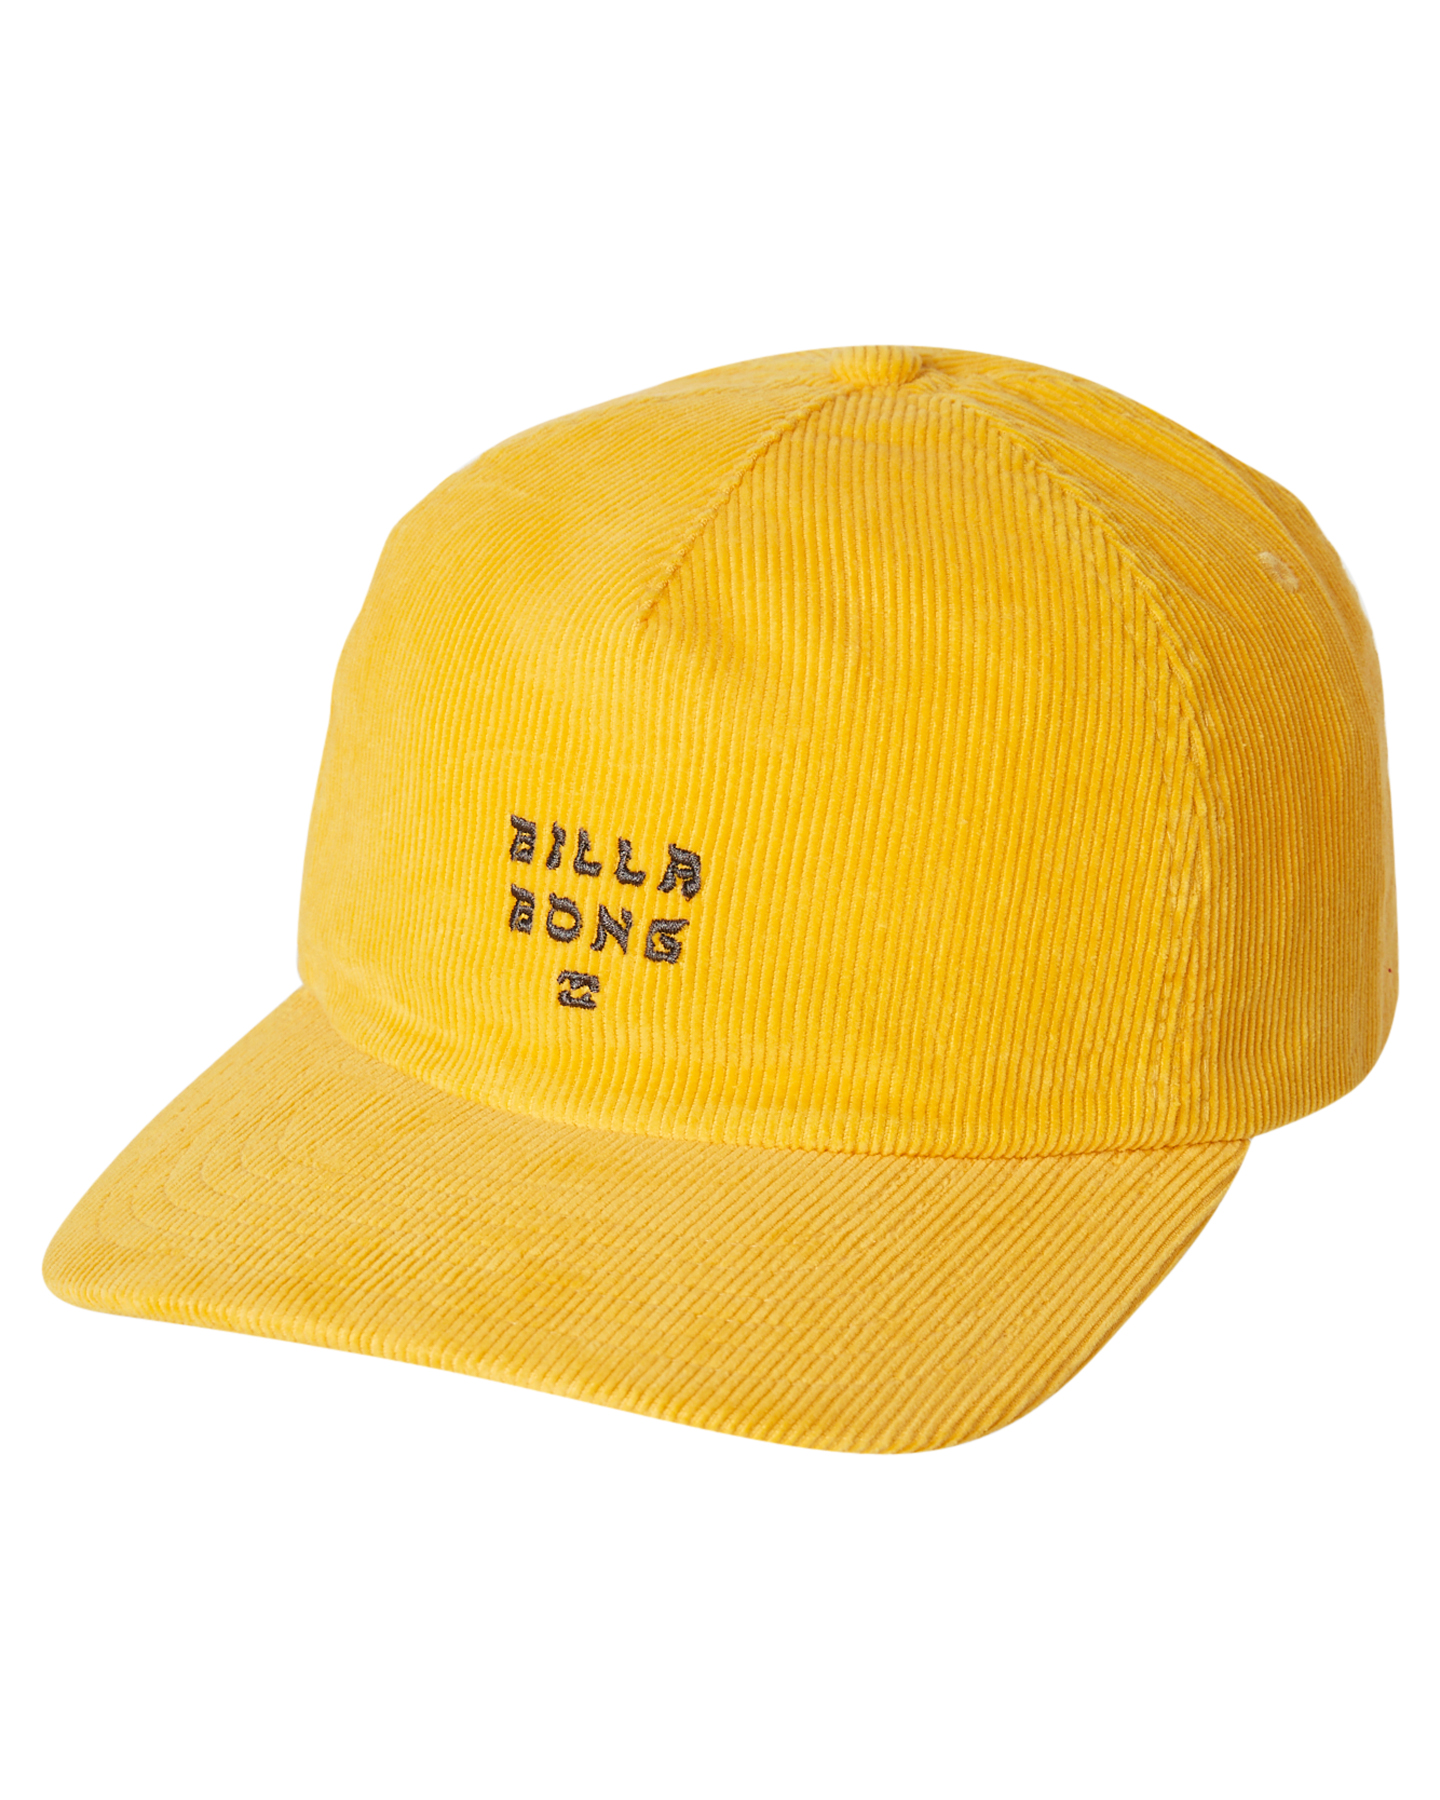 Details about New Billabong Men s Peyote Cord Snapback Cap Cotton Corduroy  Yellow 4abb02a05659